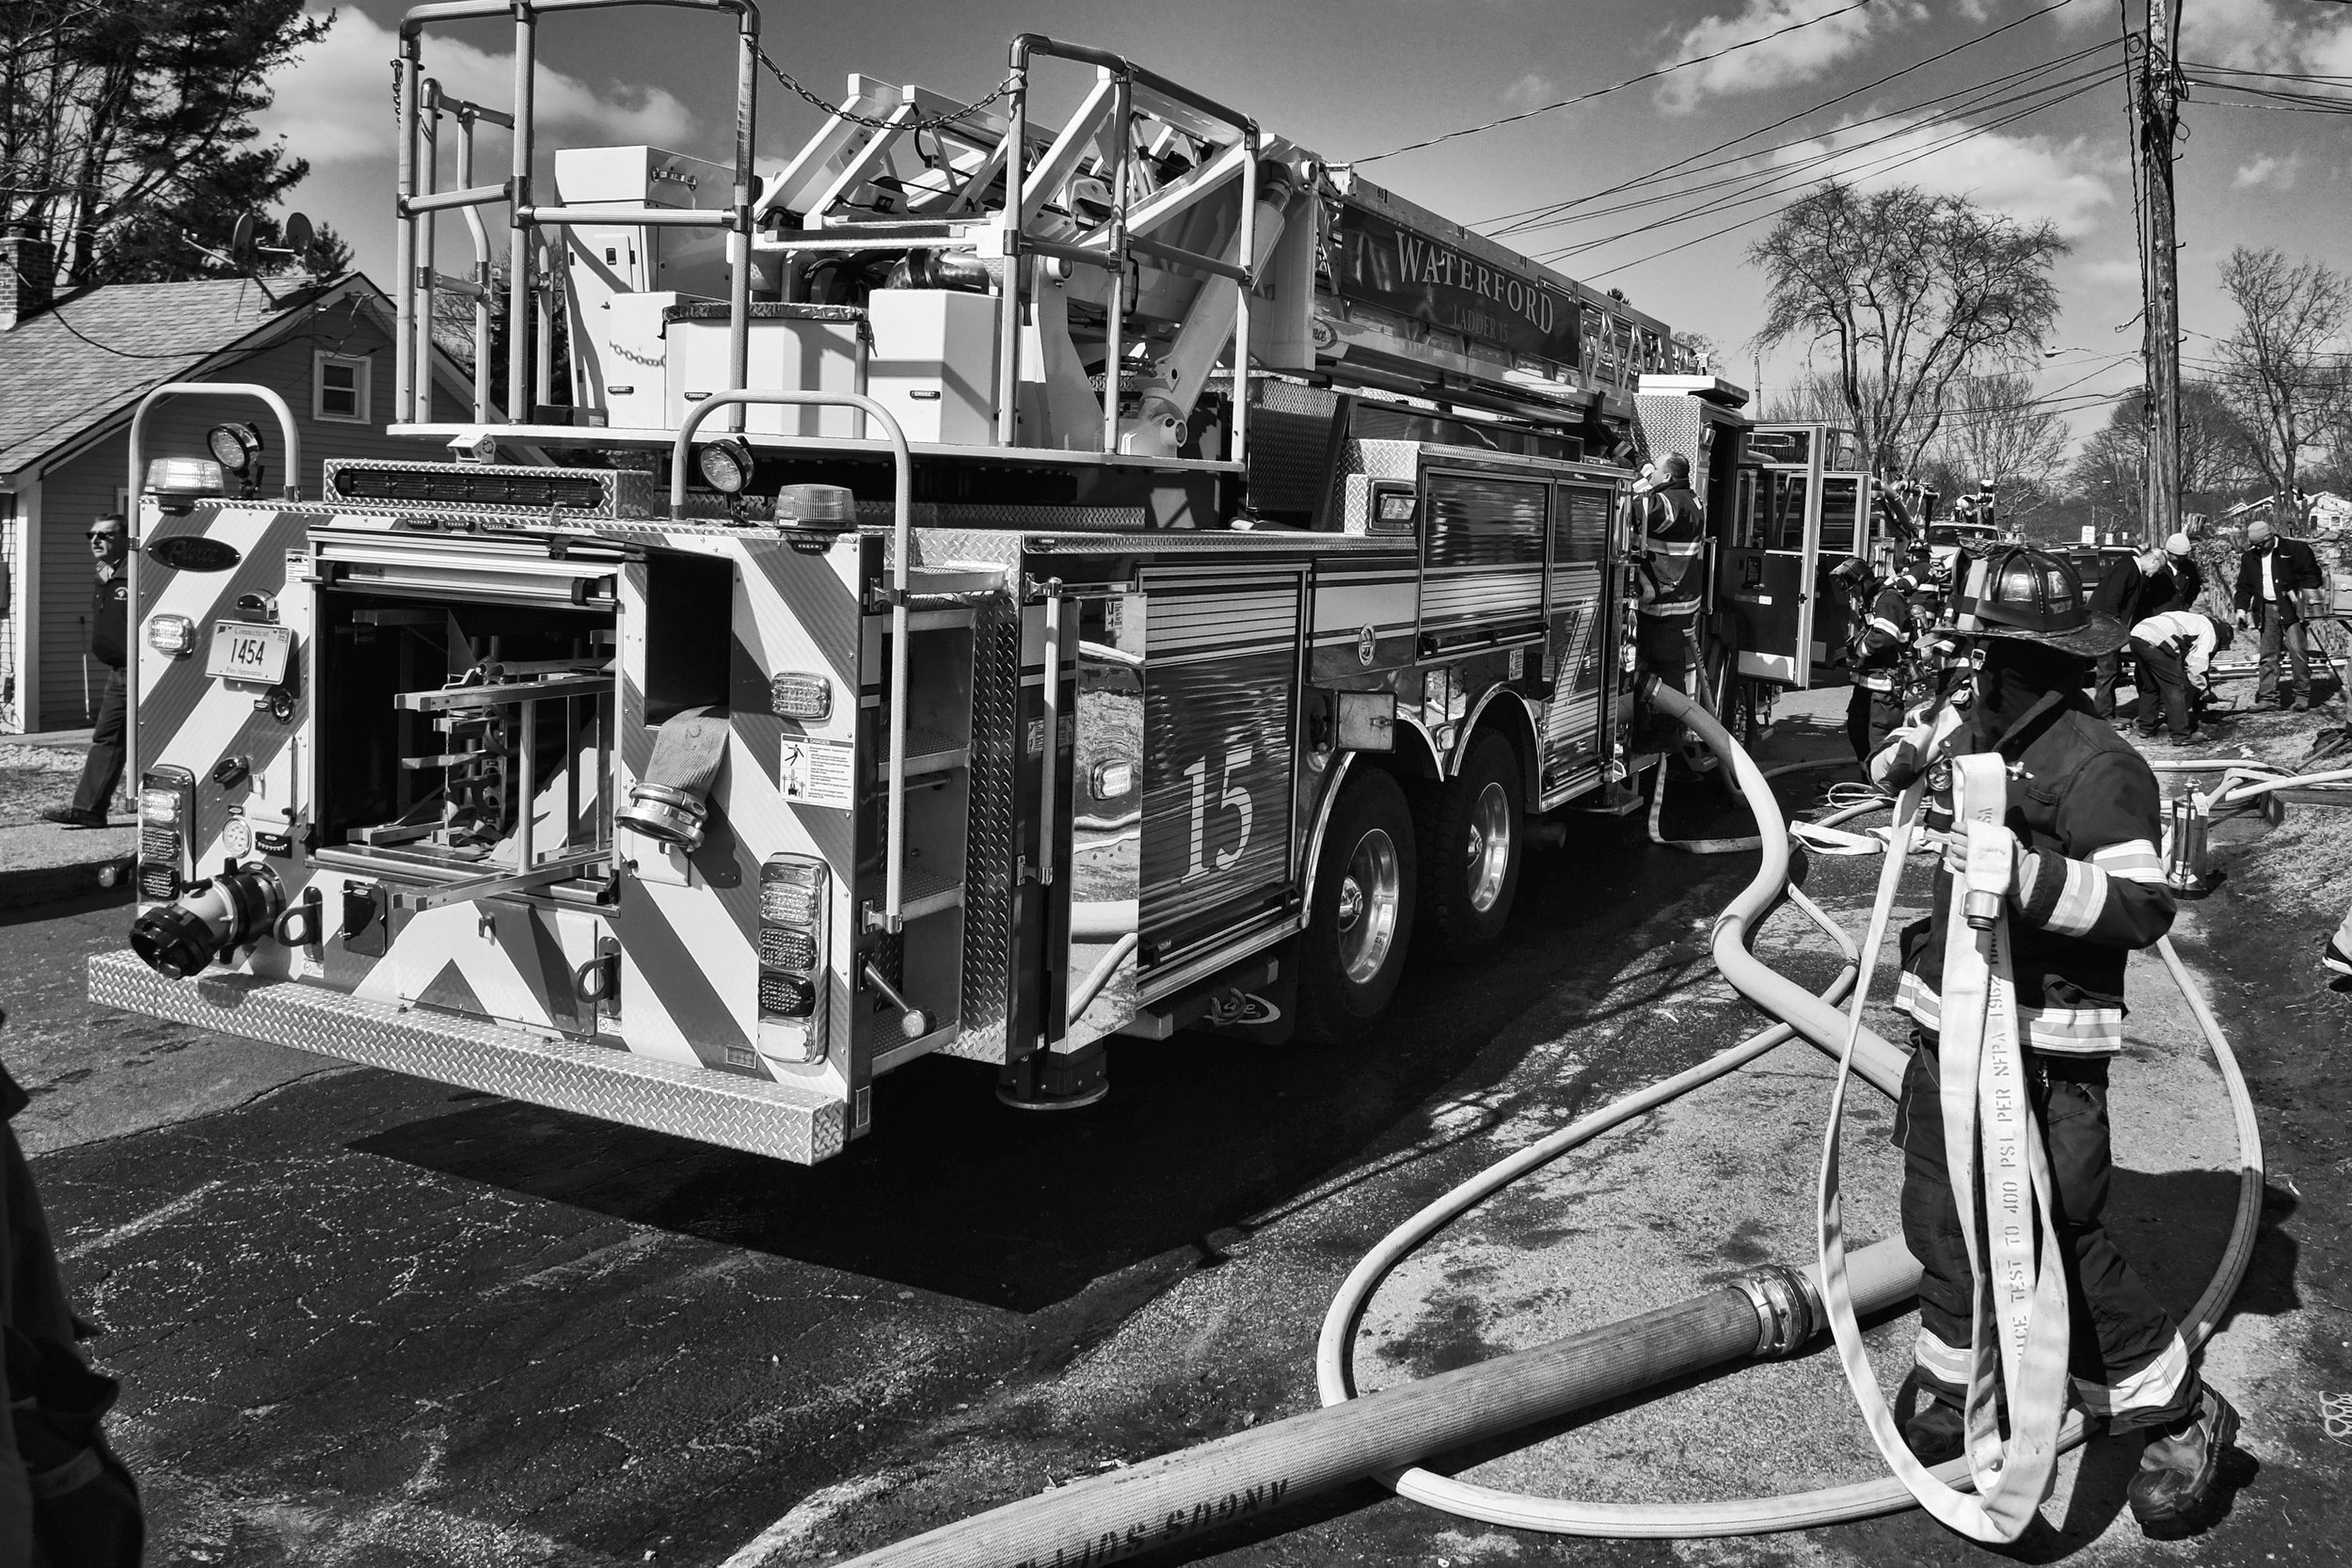 20190228_Waterford_Cohanzie_Structure_Fire_32_Vivian_St_x0054v2.jpg